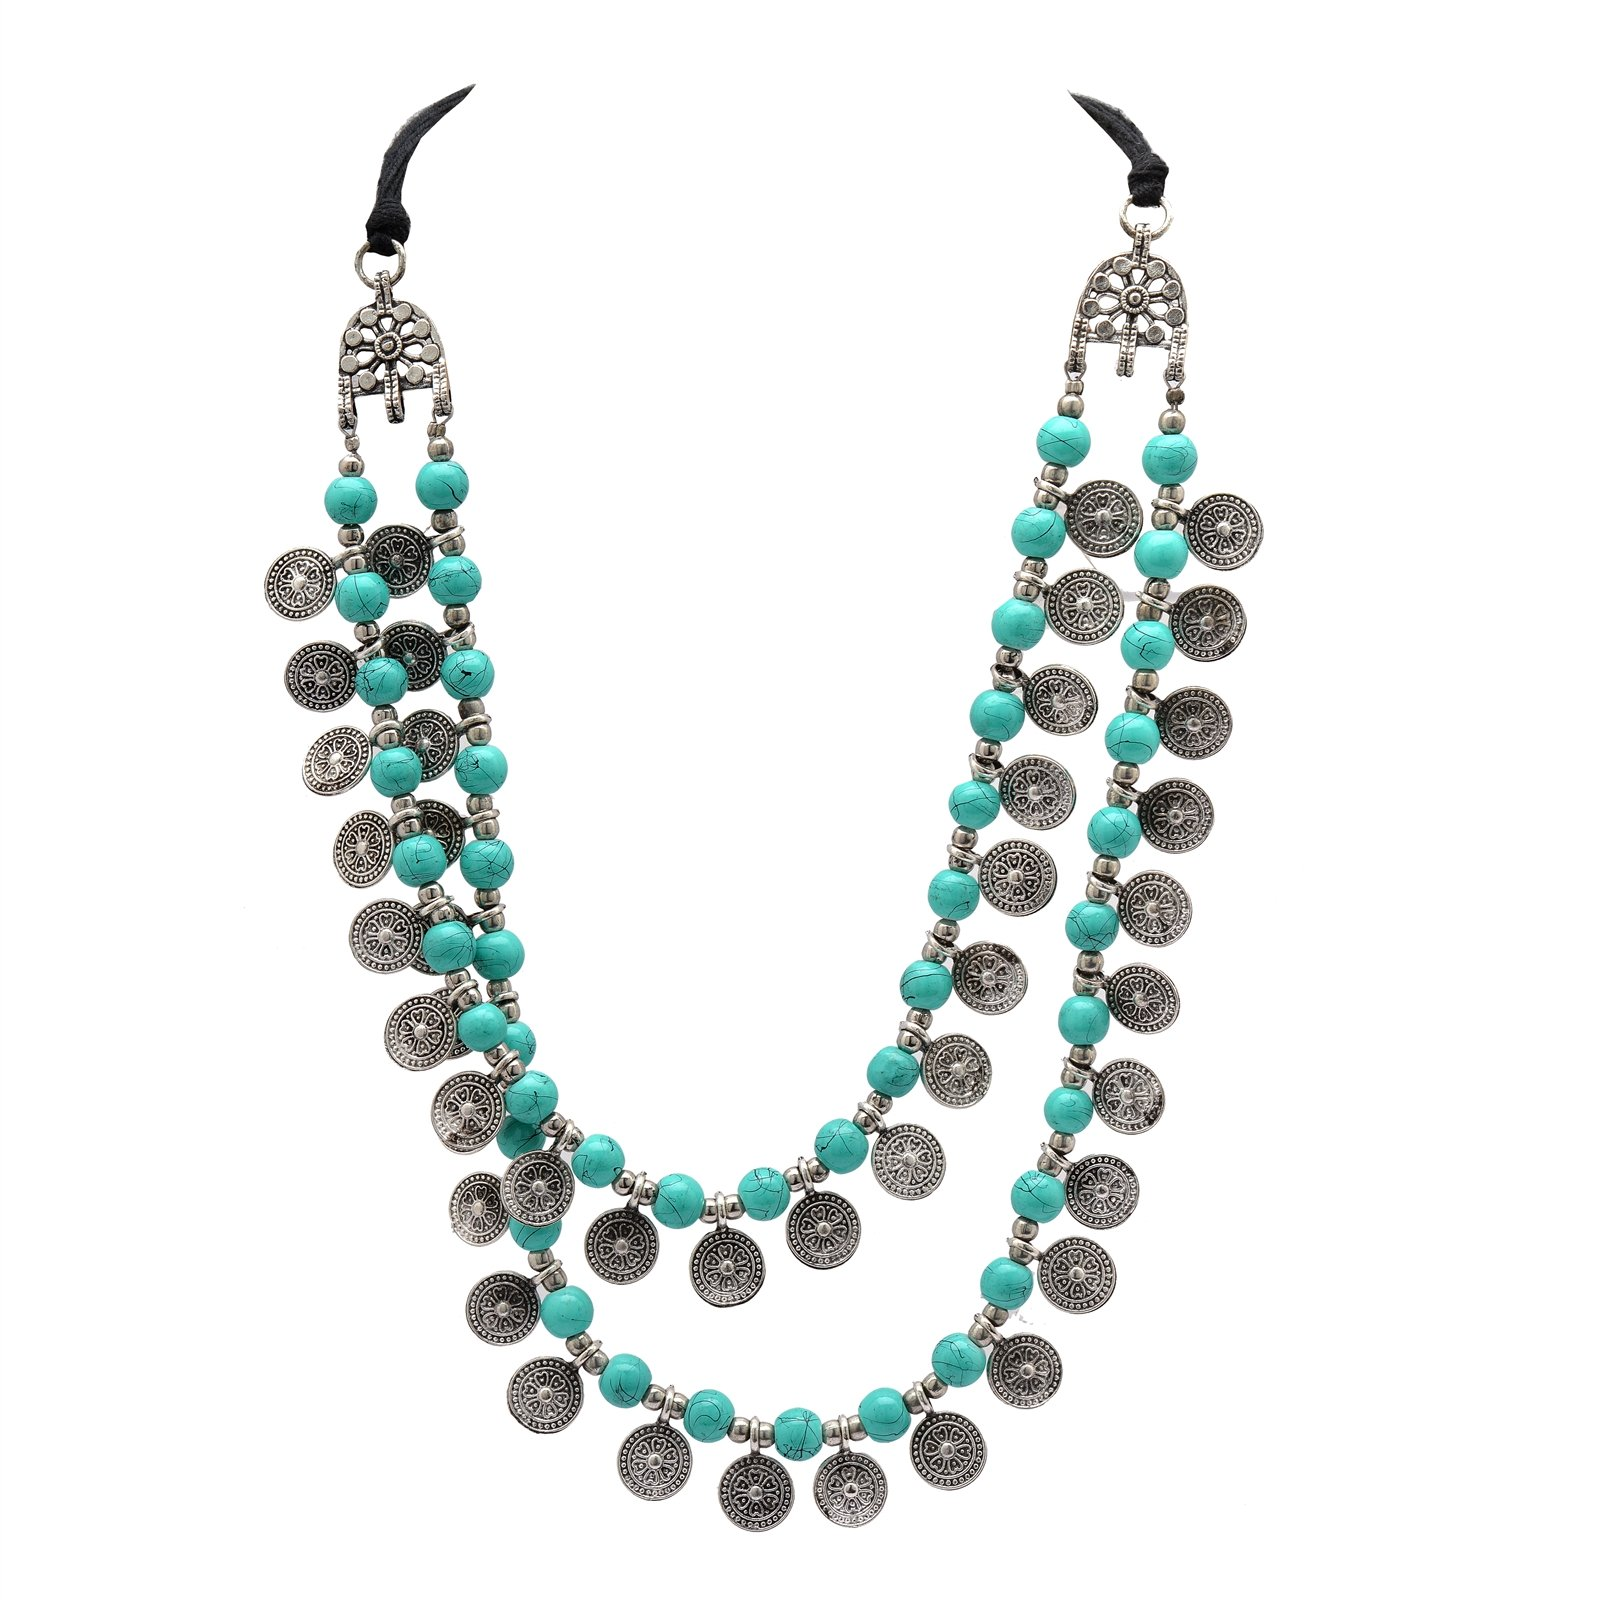 Zephyrr Fashion Jewellery Necklace German Silver Multi Strand Glass Beaded Coin Design for Girls and Women